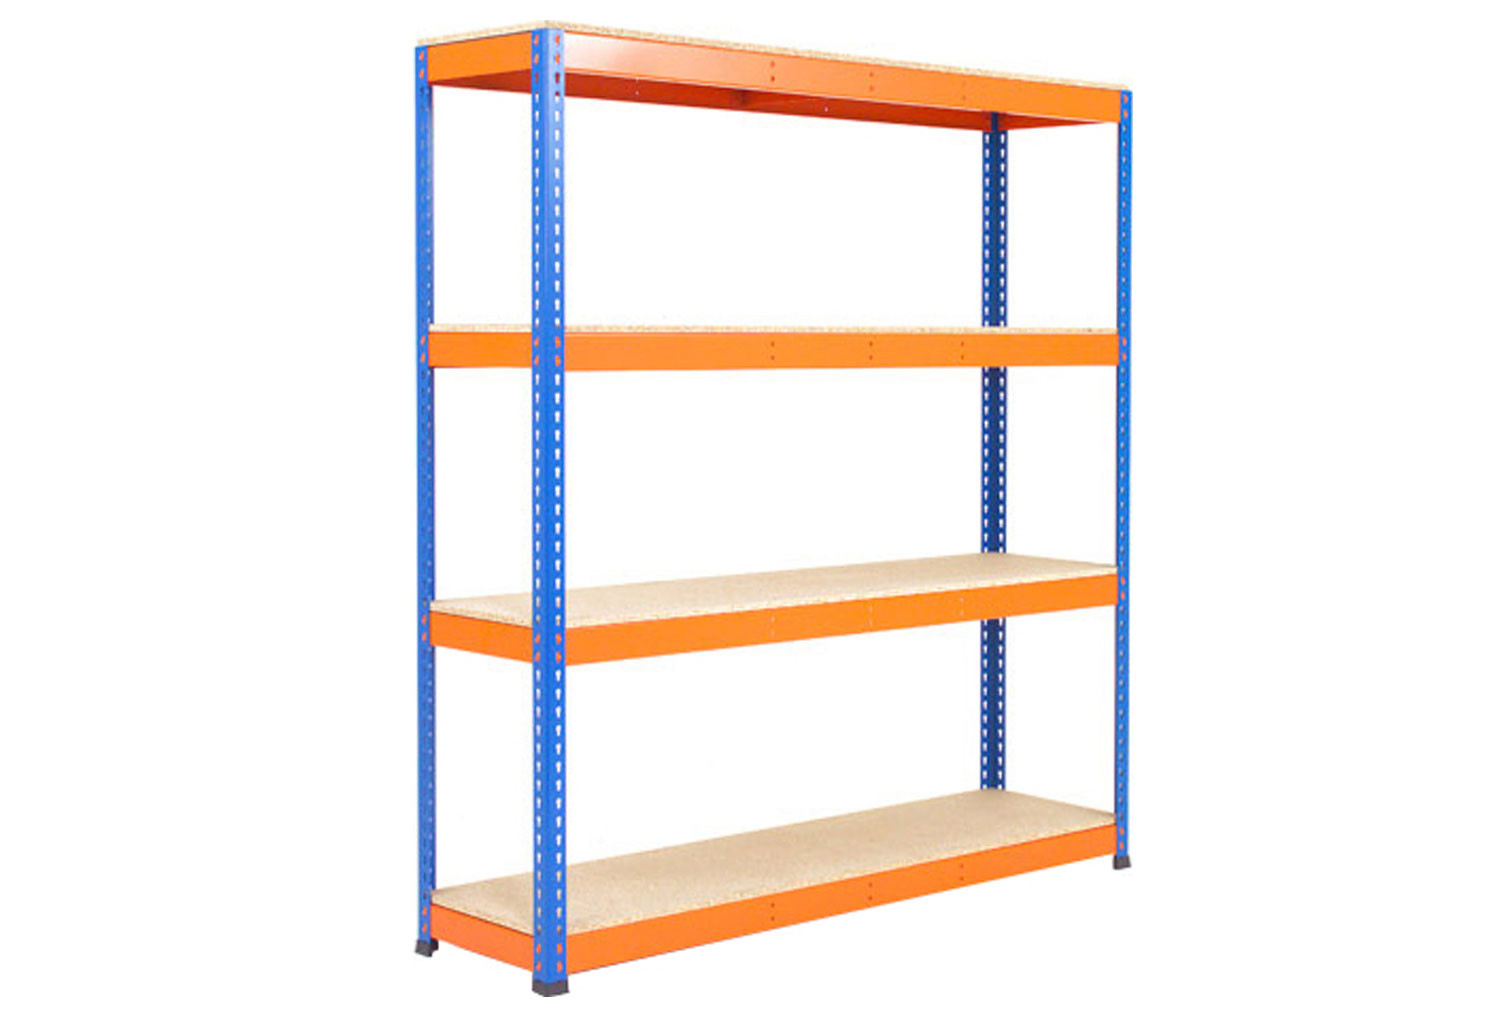 Rapid 1 Heavy Duty Shelving With 4 Chipboard Shelves 1830wx2440h (Blue/Orange)